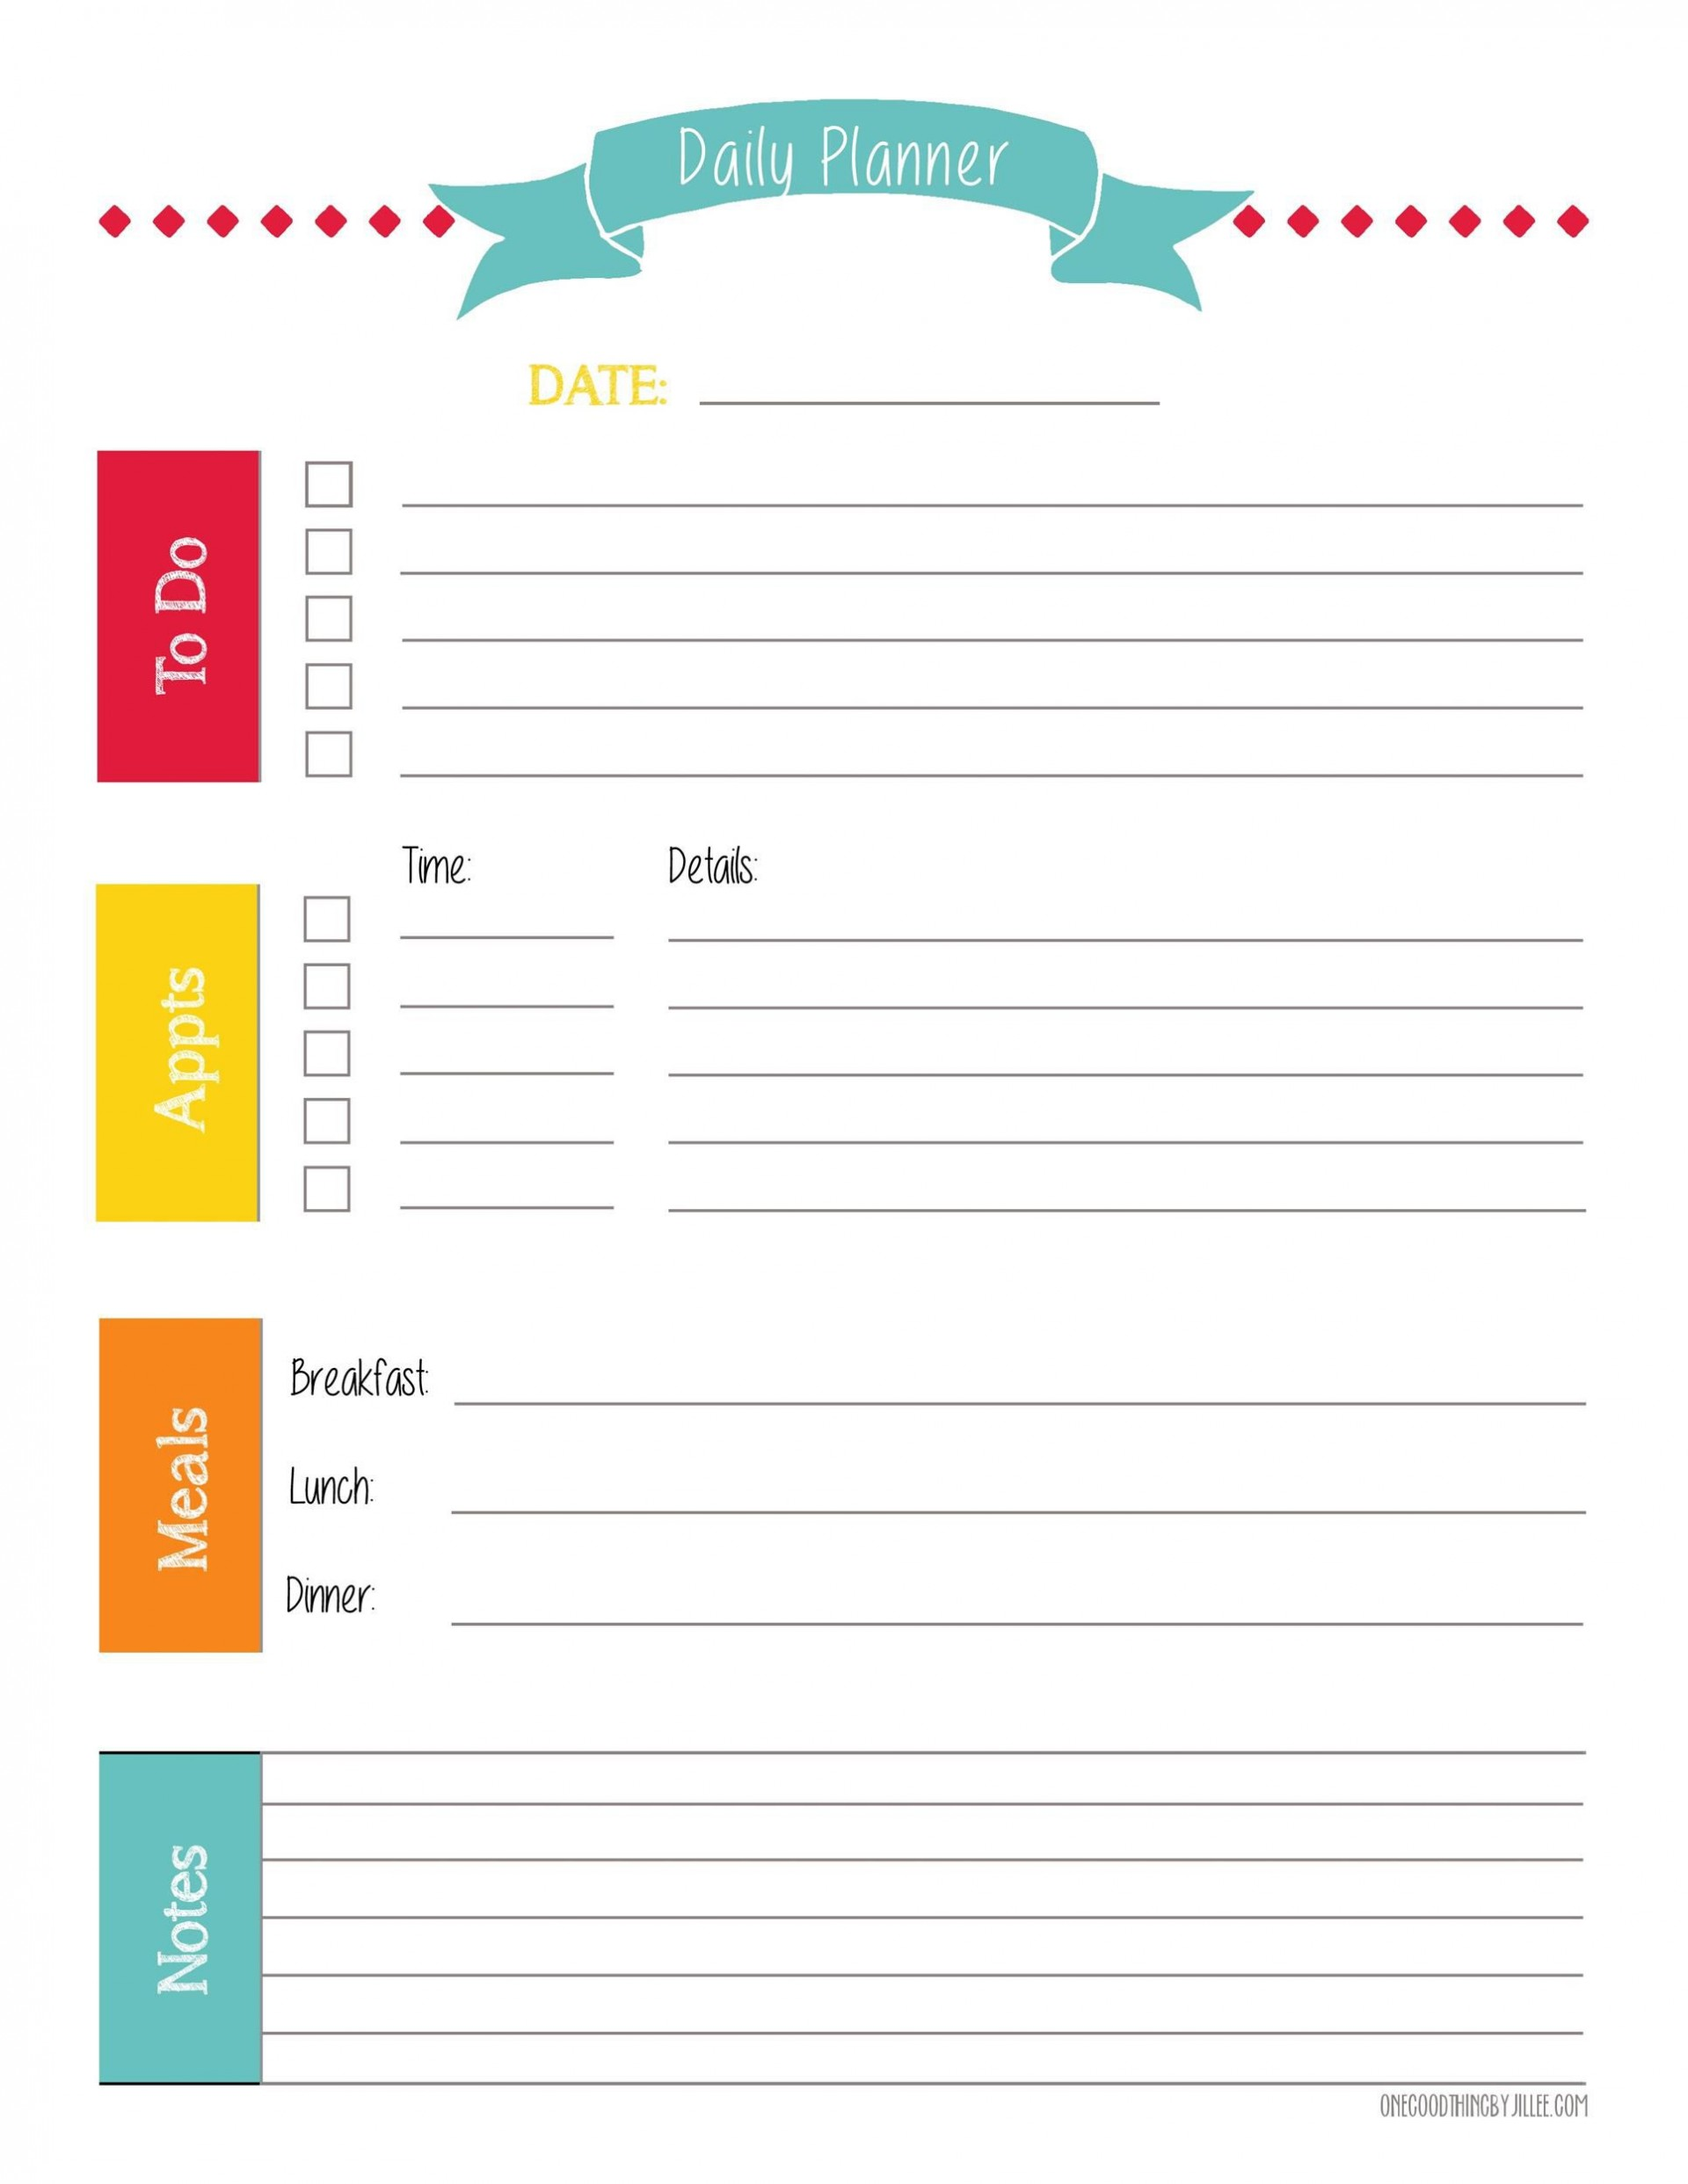 005 Archaicawful Real Estate Daily Planner Template Highest Quality 1920